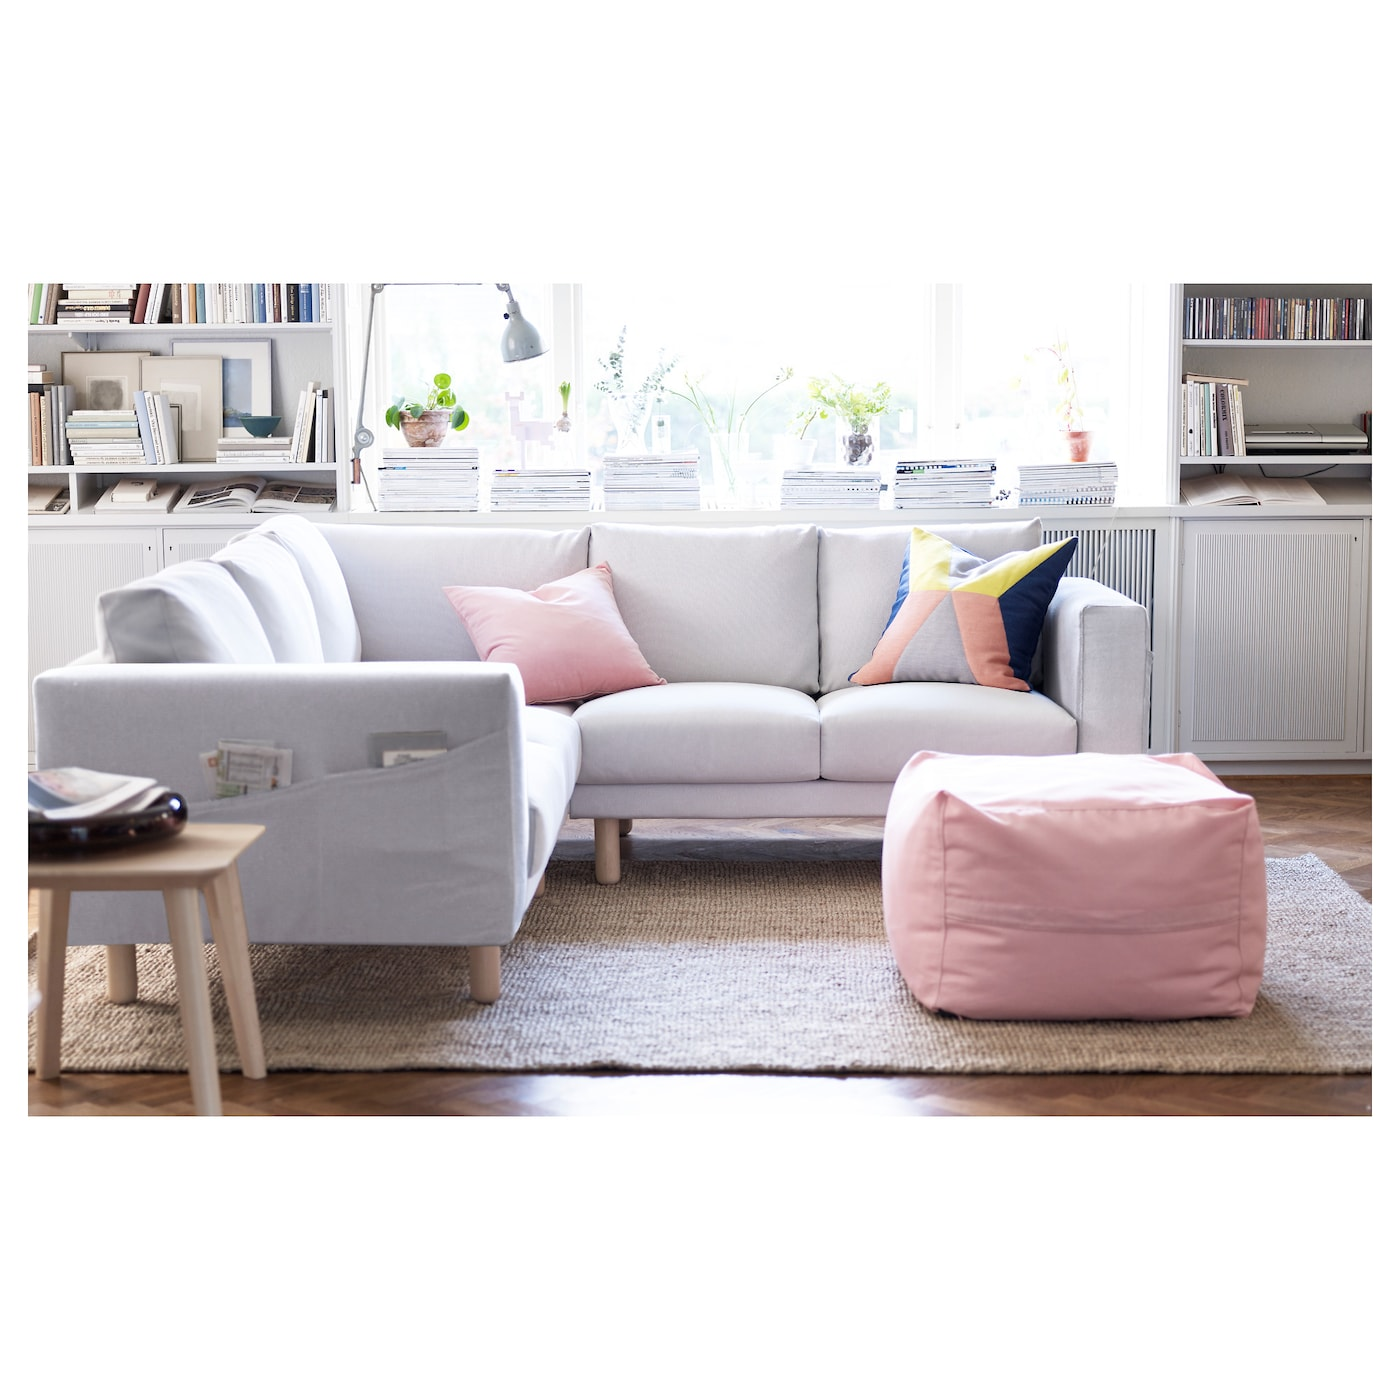 ikea norsborg corner sofa 4seat 10 year guarantee read about the terms